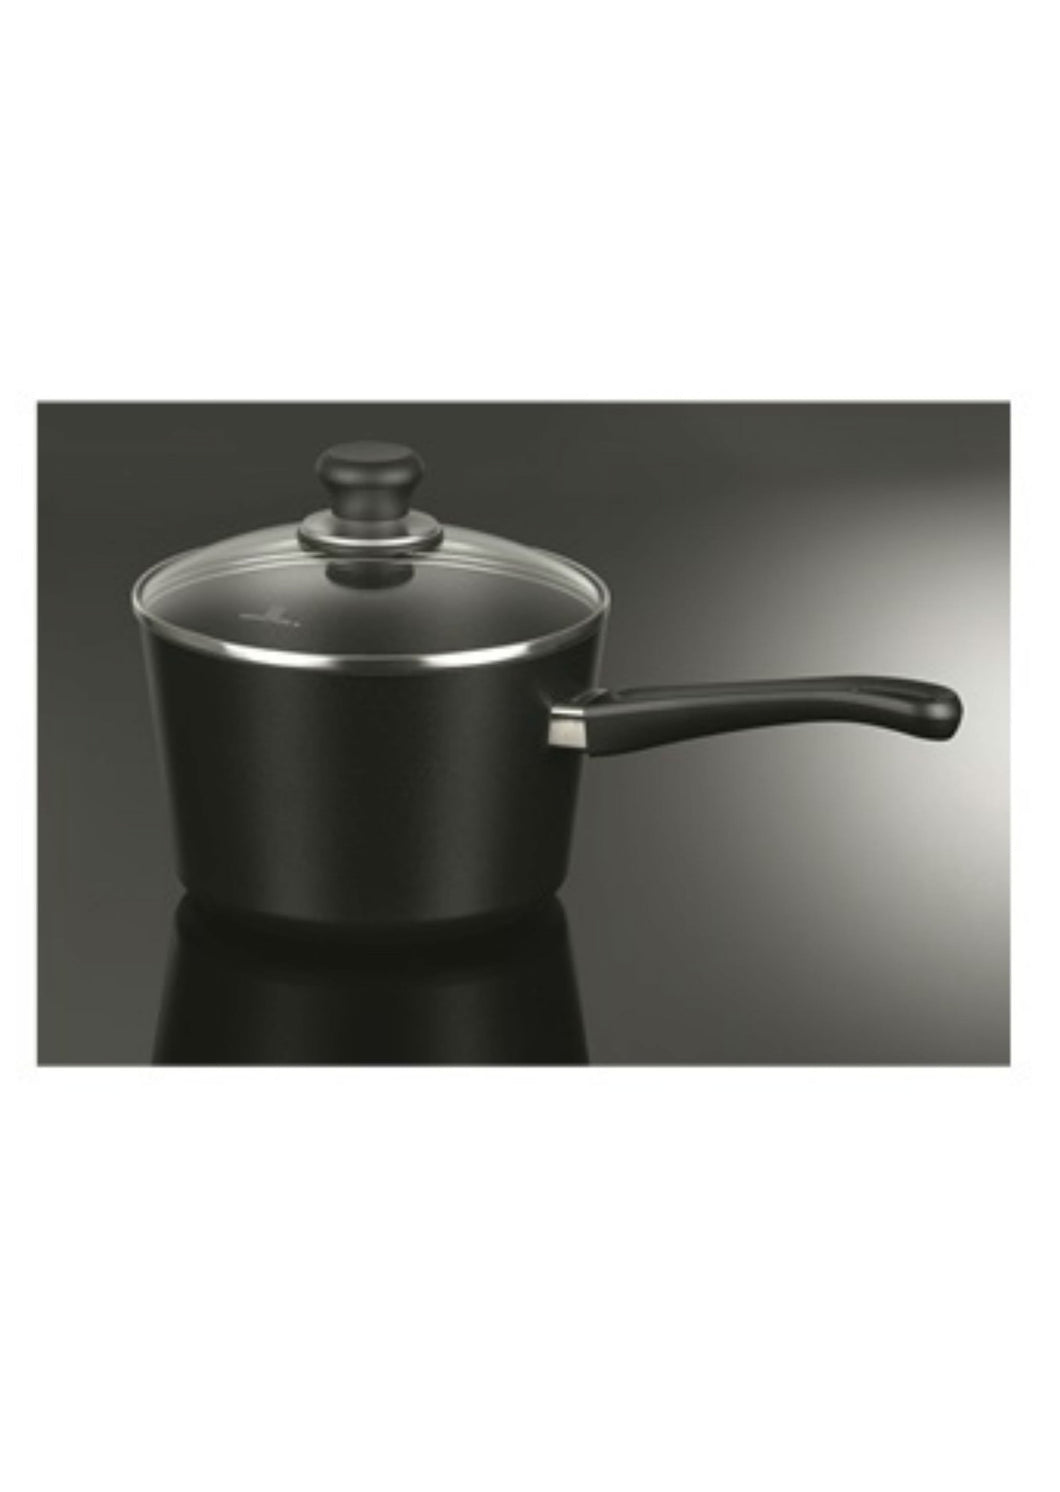 Scanpan Induction+ 20cm/3.0L Saucepan